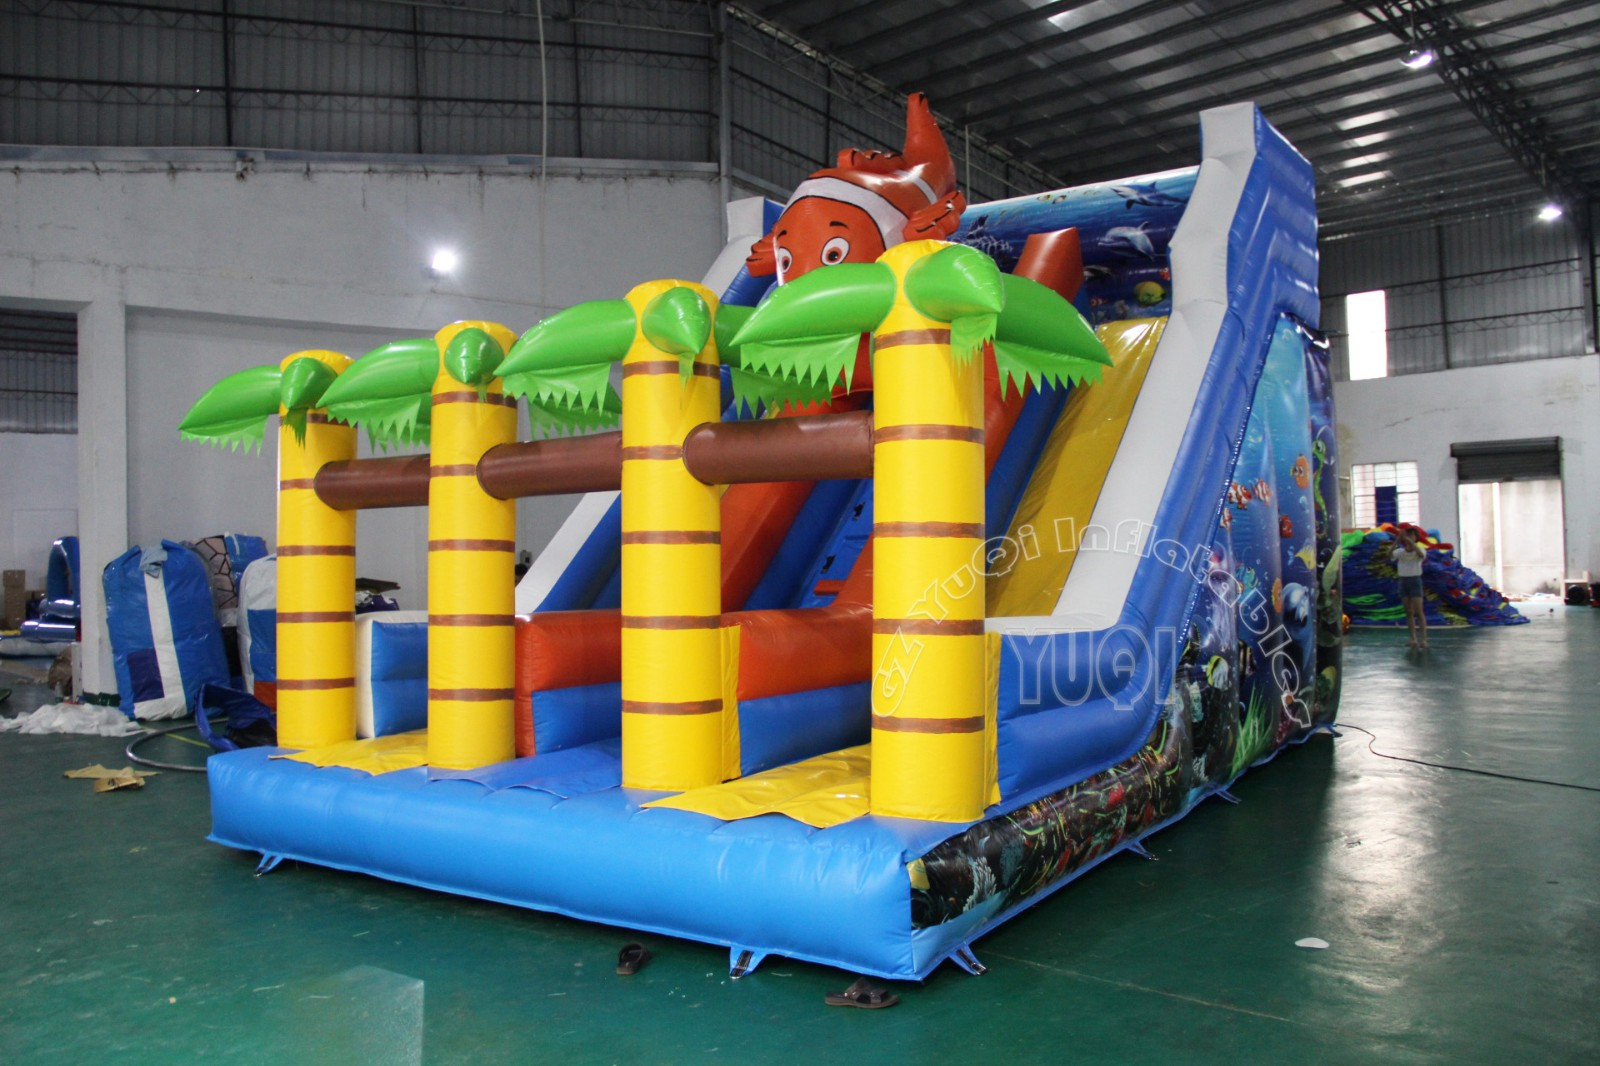 YUQI-Yq333 New Inflatable Water Slide Water Park Outground For Hot Sale